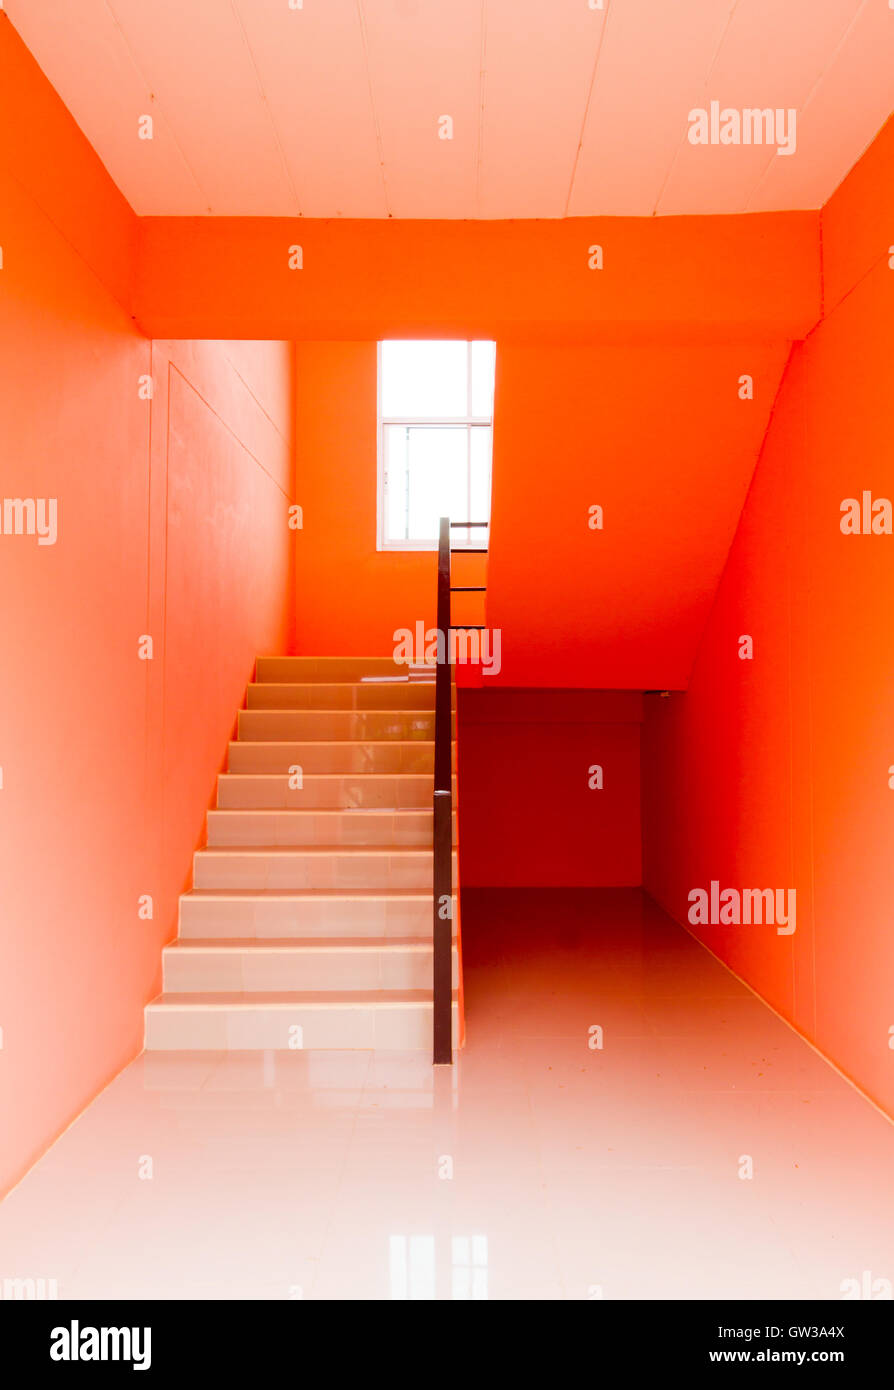 Colors Architecture Stair Wall Stockfotos & Colors Architecture ...